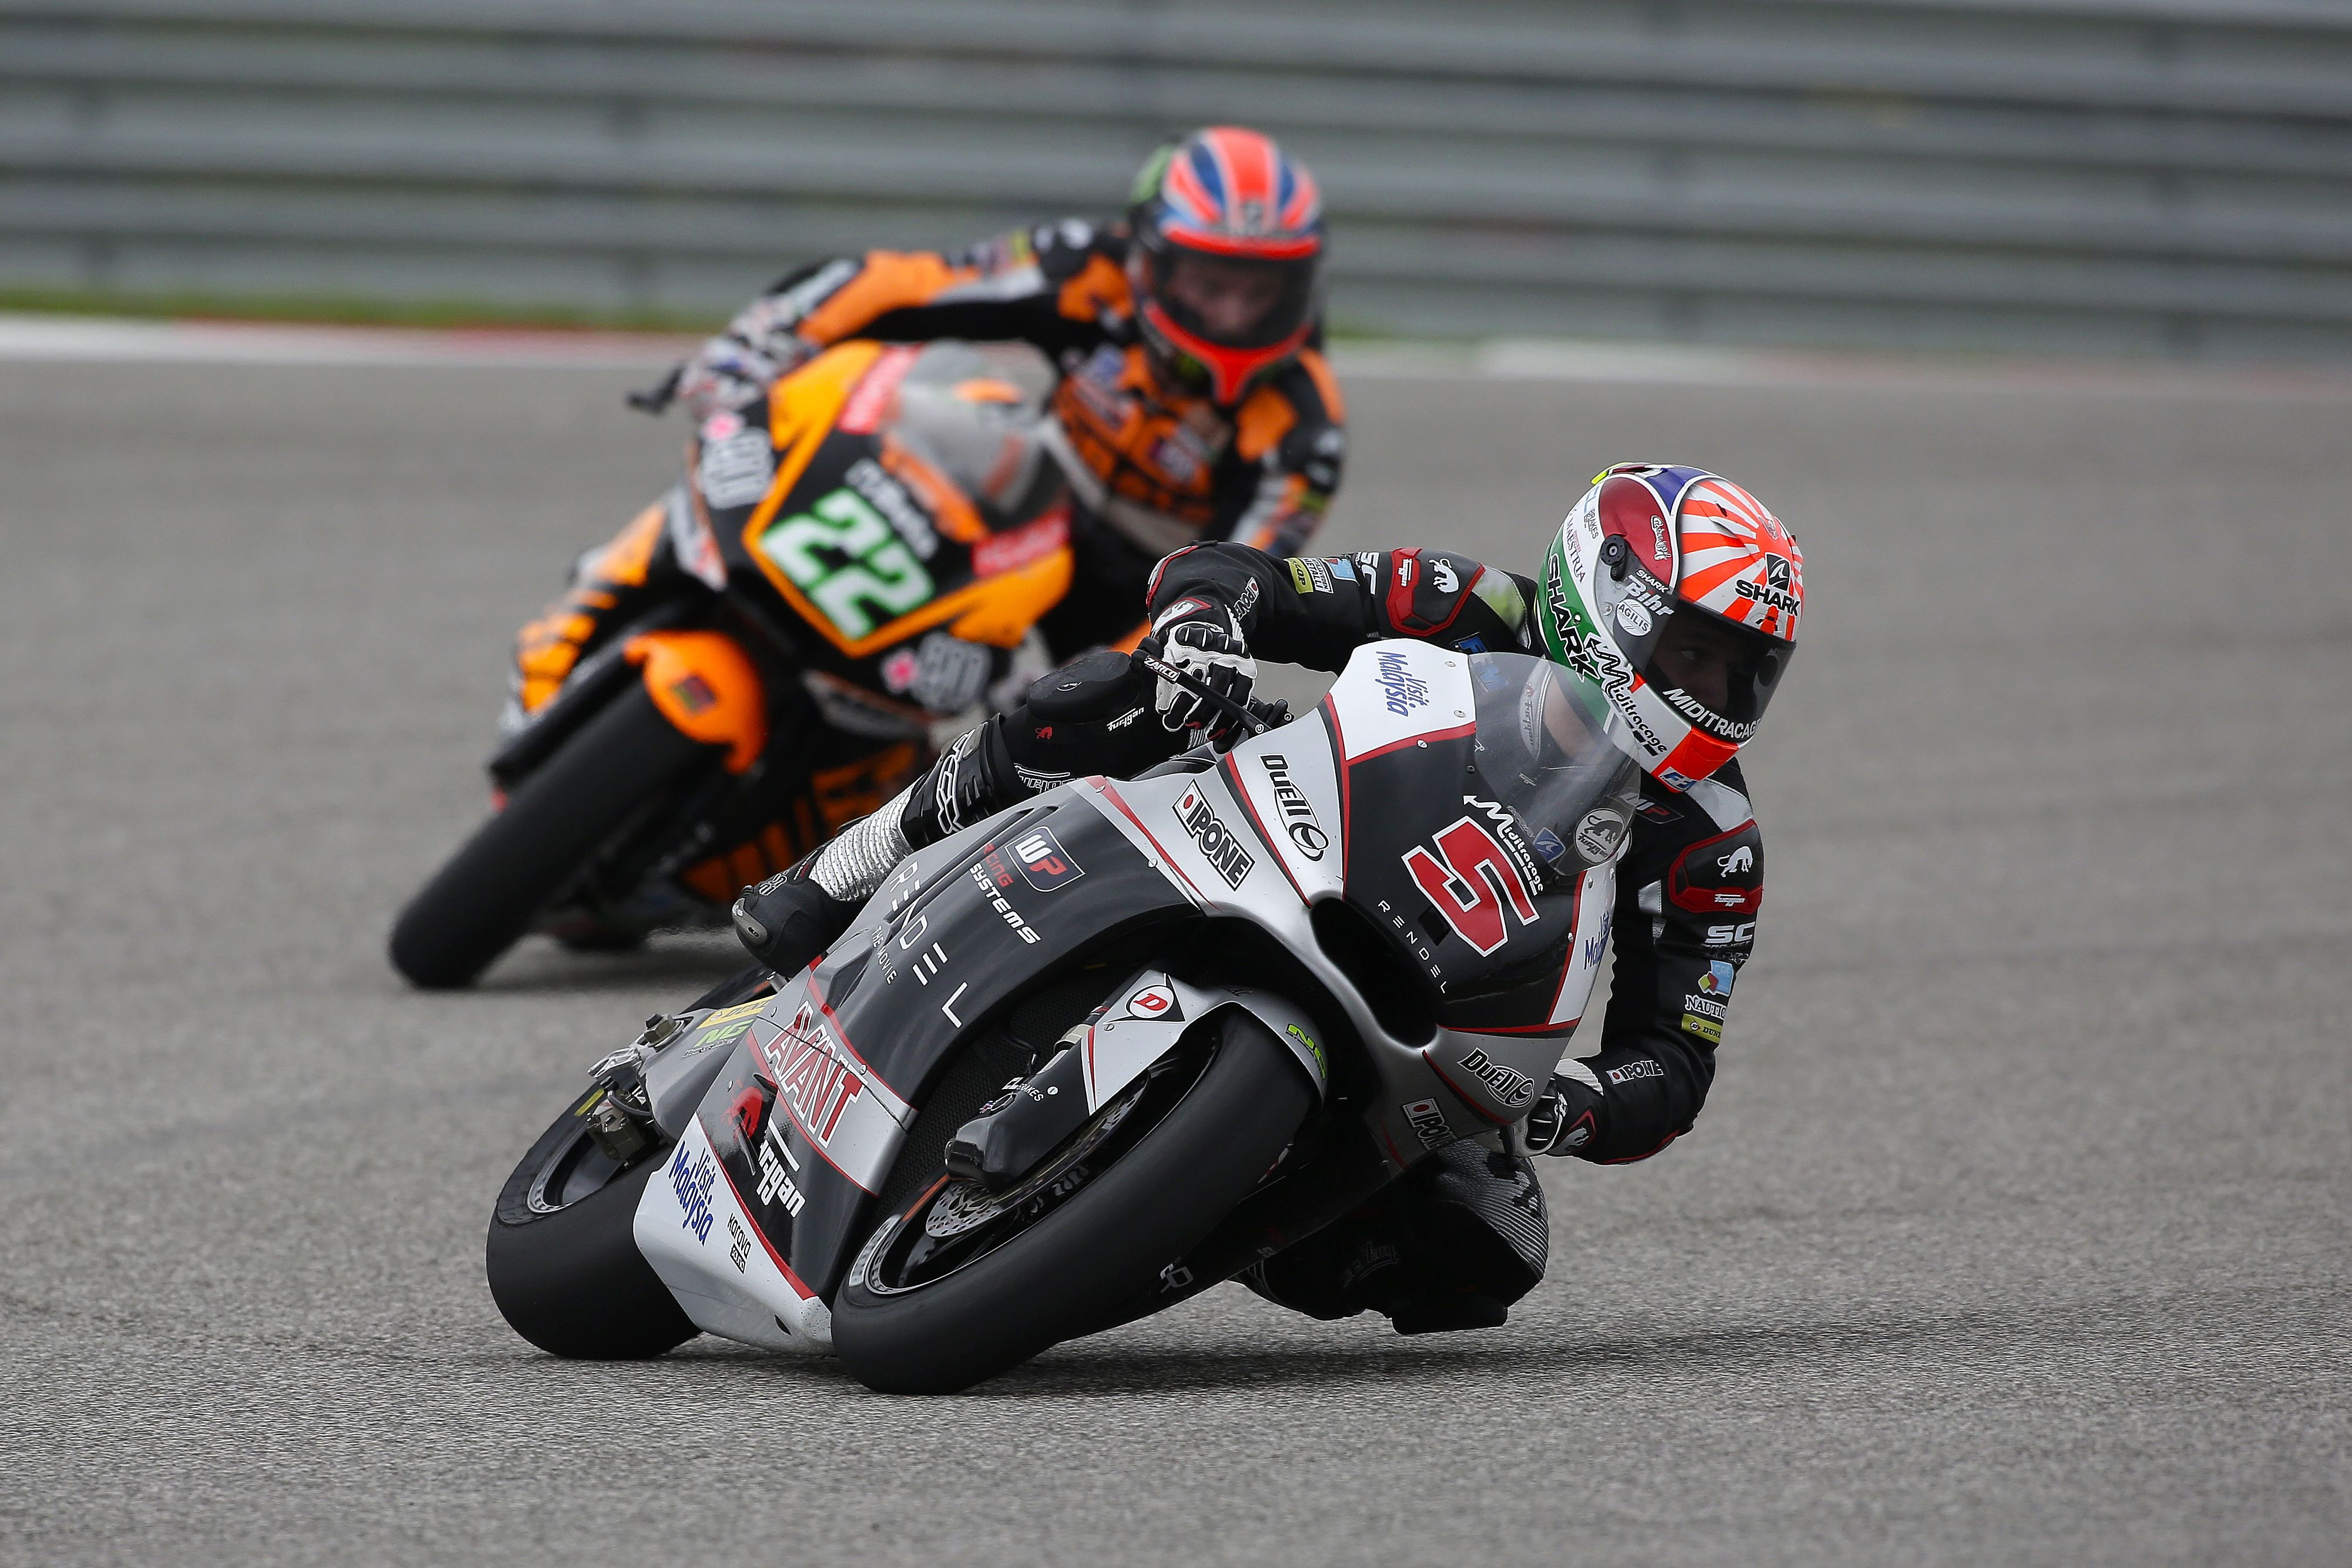 Another Successful Weekend For Tcxboots And Its Riders Moto2 A Victory Signed Tcx Sam Lowes Is The Moto2 Winner Of The Red B Two By Two Rider Grand Prix